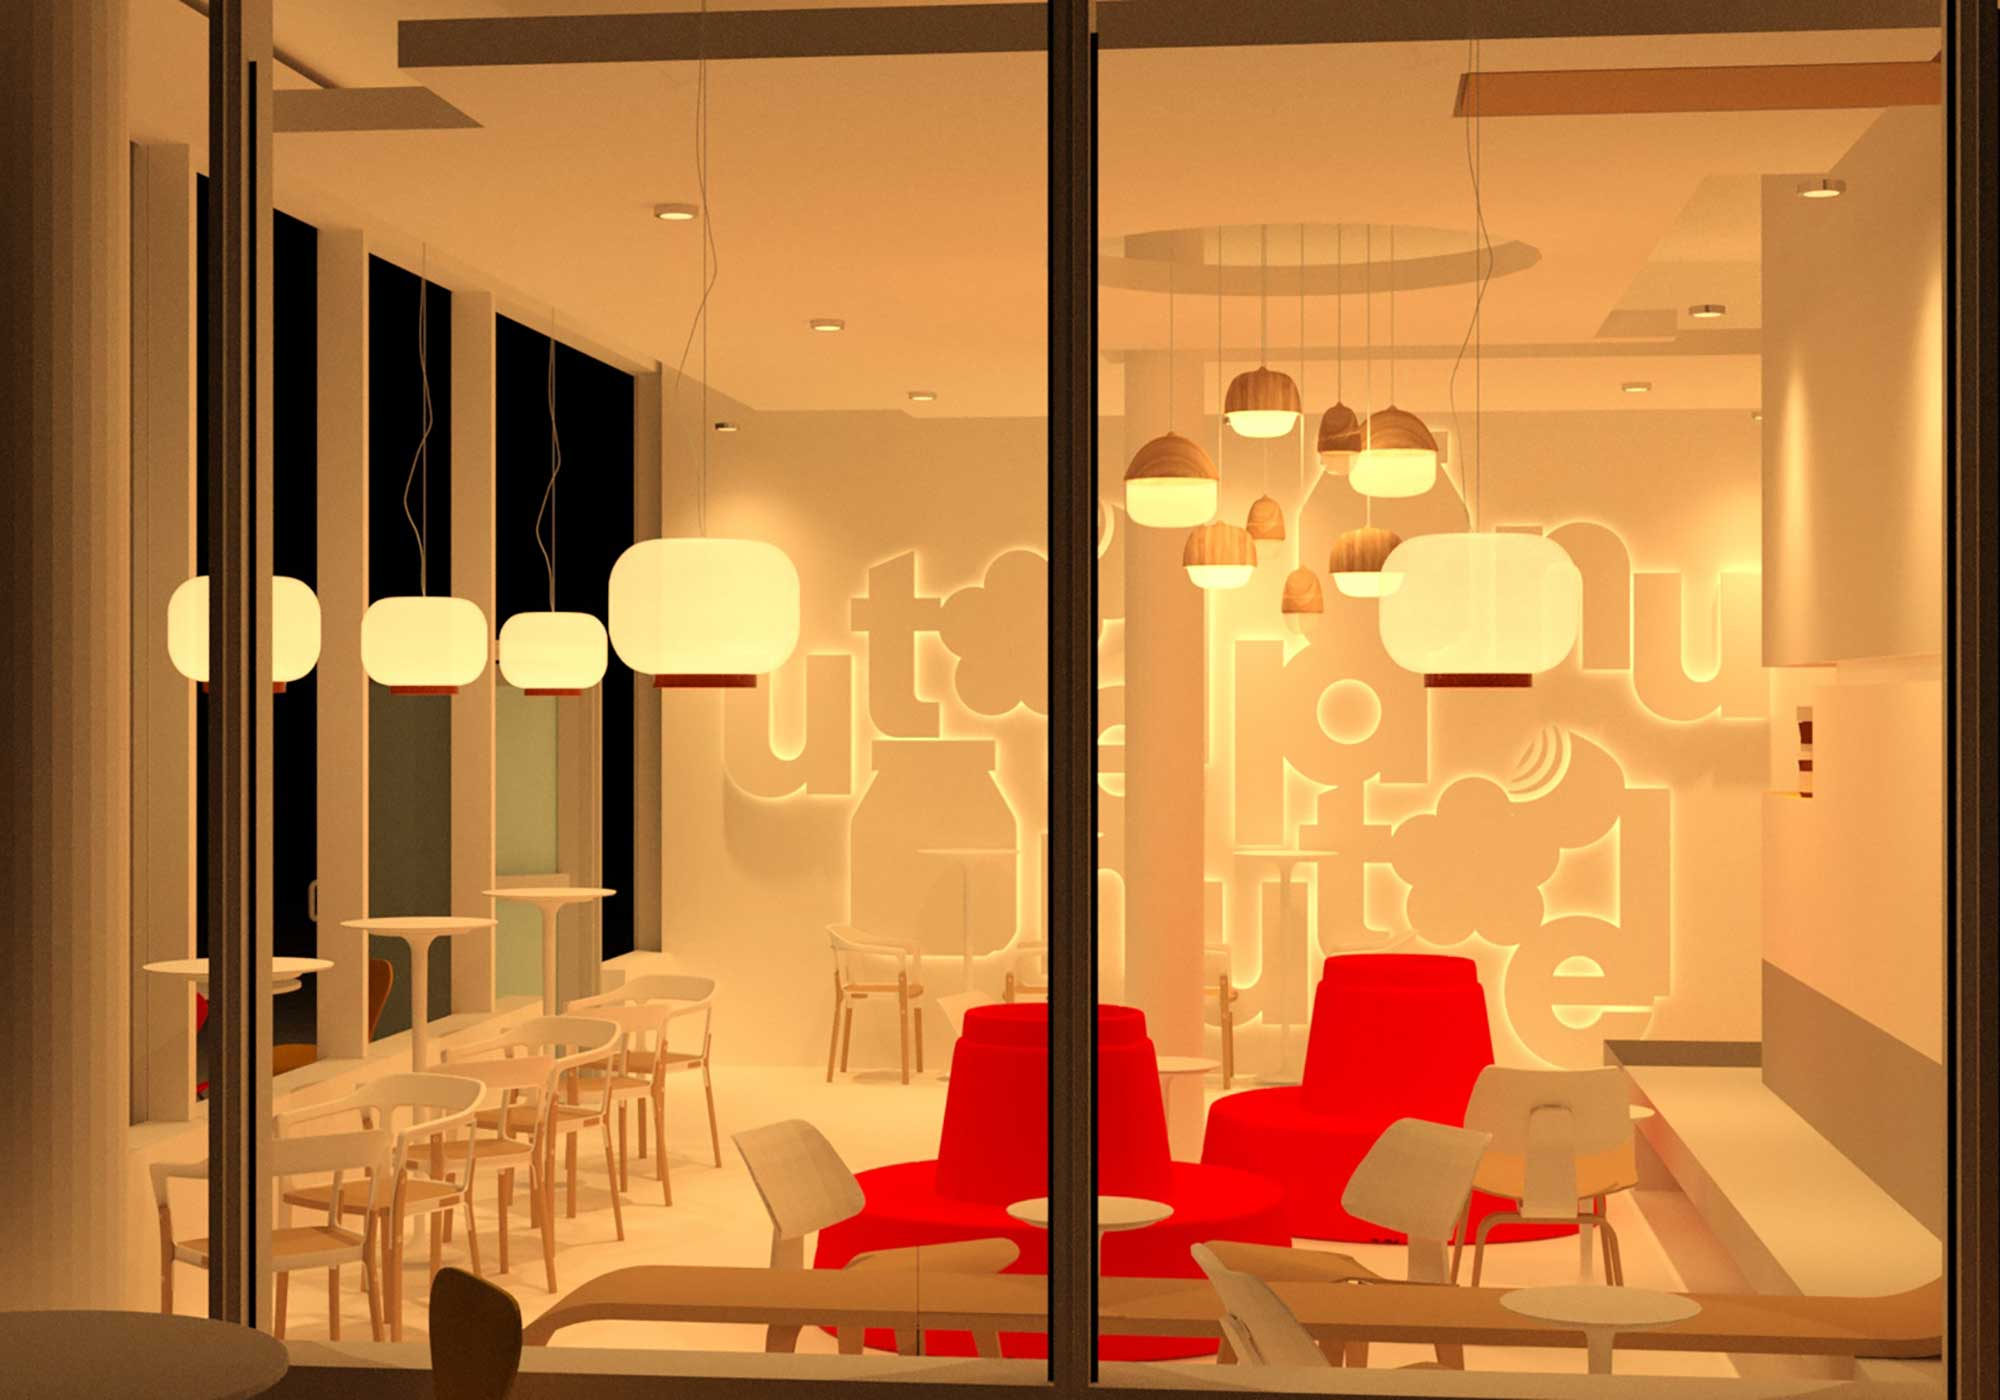 Rendering of the Nutella Cafe